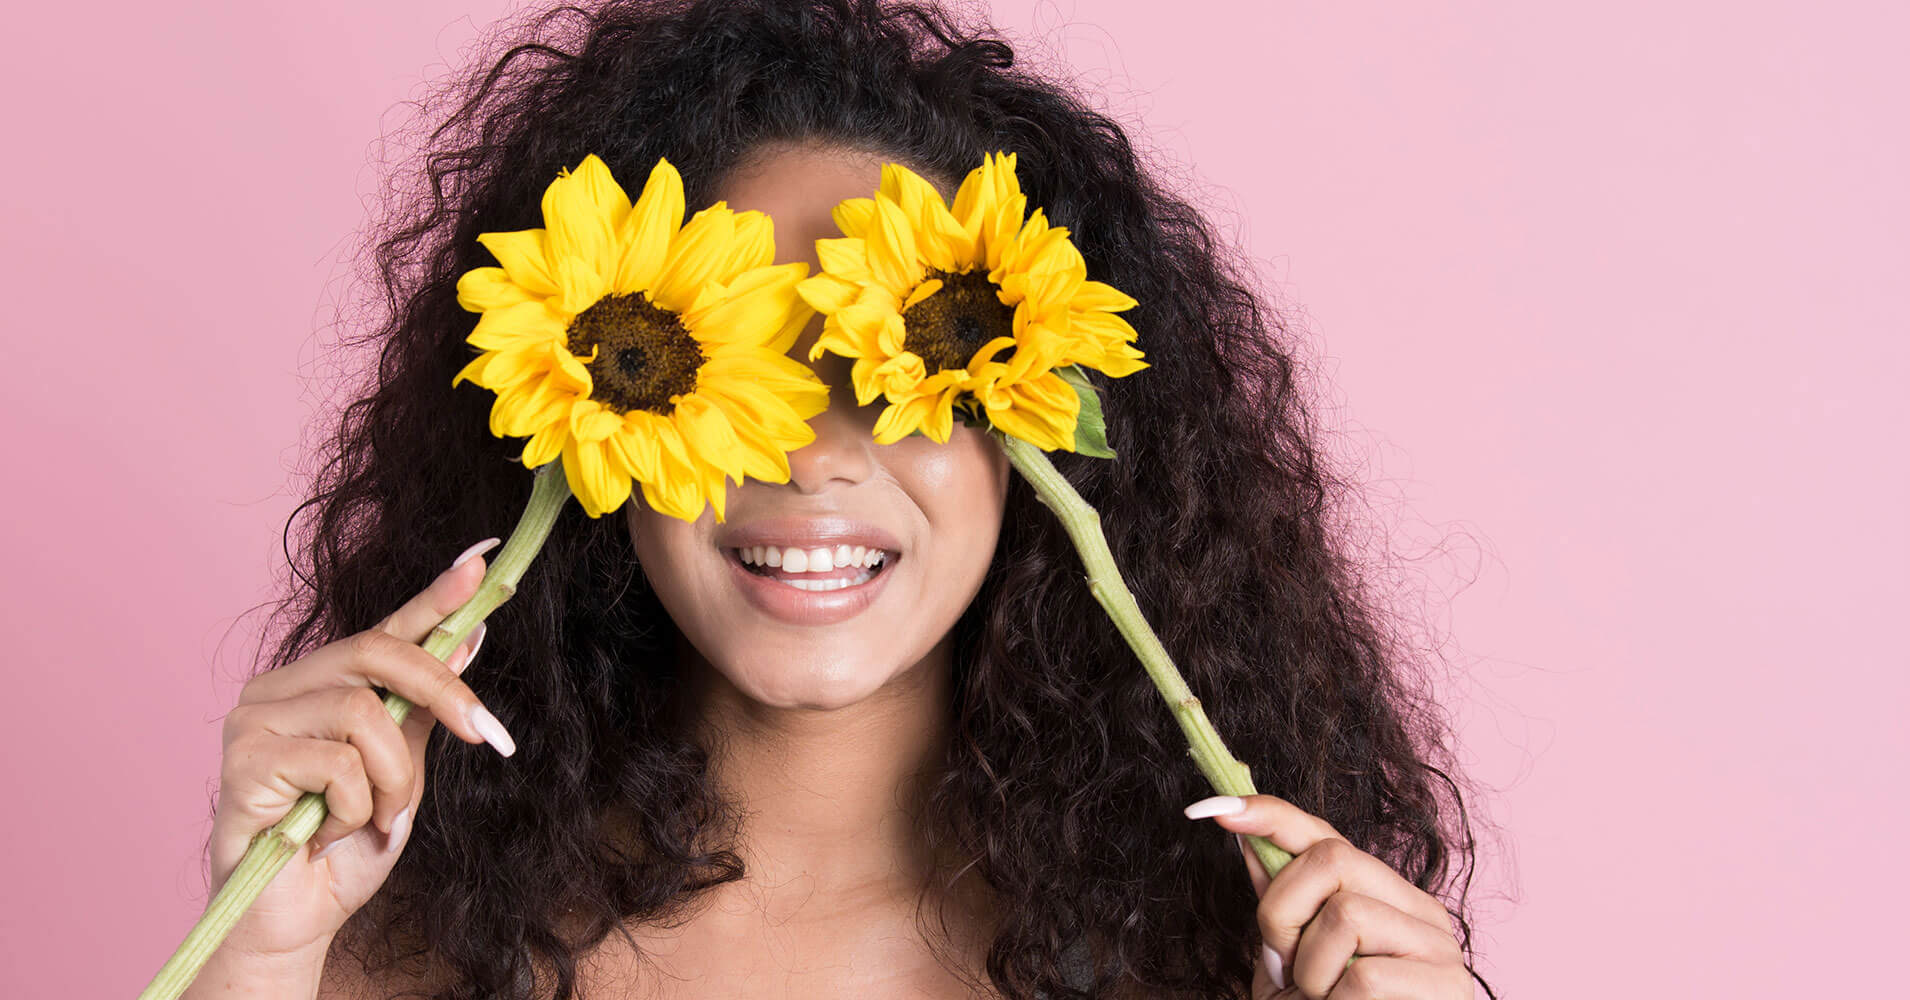 Eyes eyes baby - natural eye cream by Fleur & Bee - with woman holding sunflower